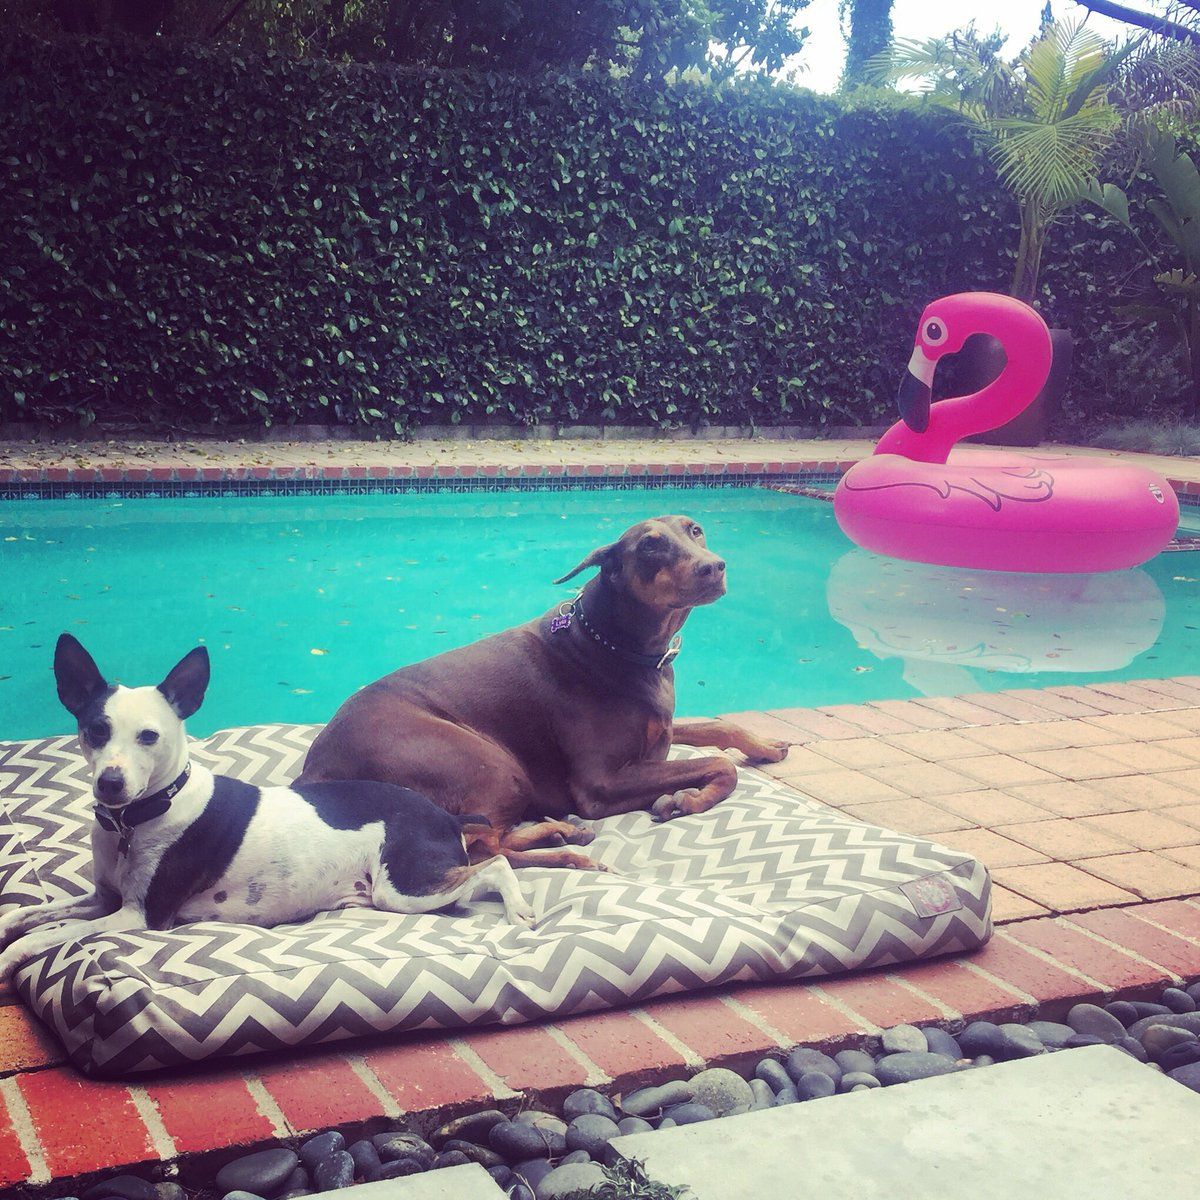 """""""I wish they all could be California...dogs"""" - #california #cali #lalaland #dogs #DogsofTwittter #doberman #ratterrier #deckerratterrier #poolside #woof #poolday #warmweather #poolweather #lazy #relax #chilling #poolvibes #sunshine #thebeachboys #flamingo @Rocky_OnTheRun #pets<br>http://pic.twitter.com/YfSa9qhiT1"""